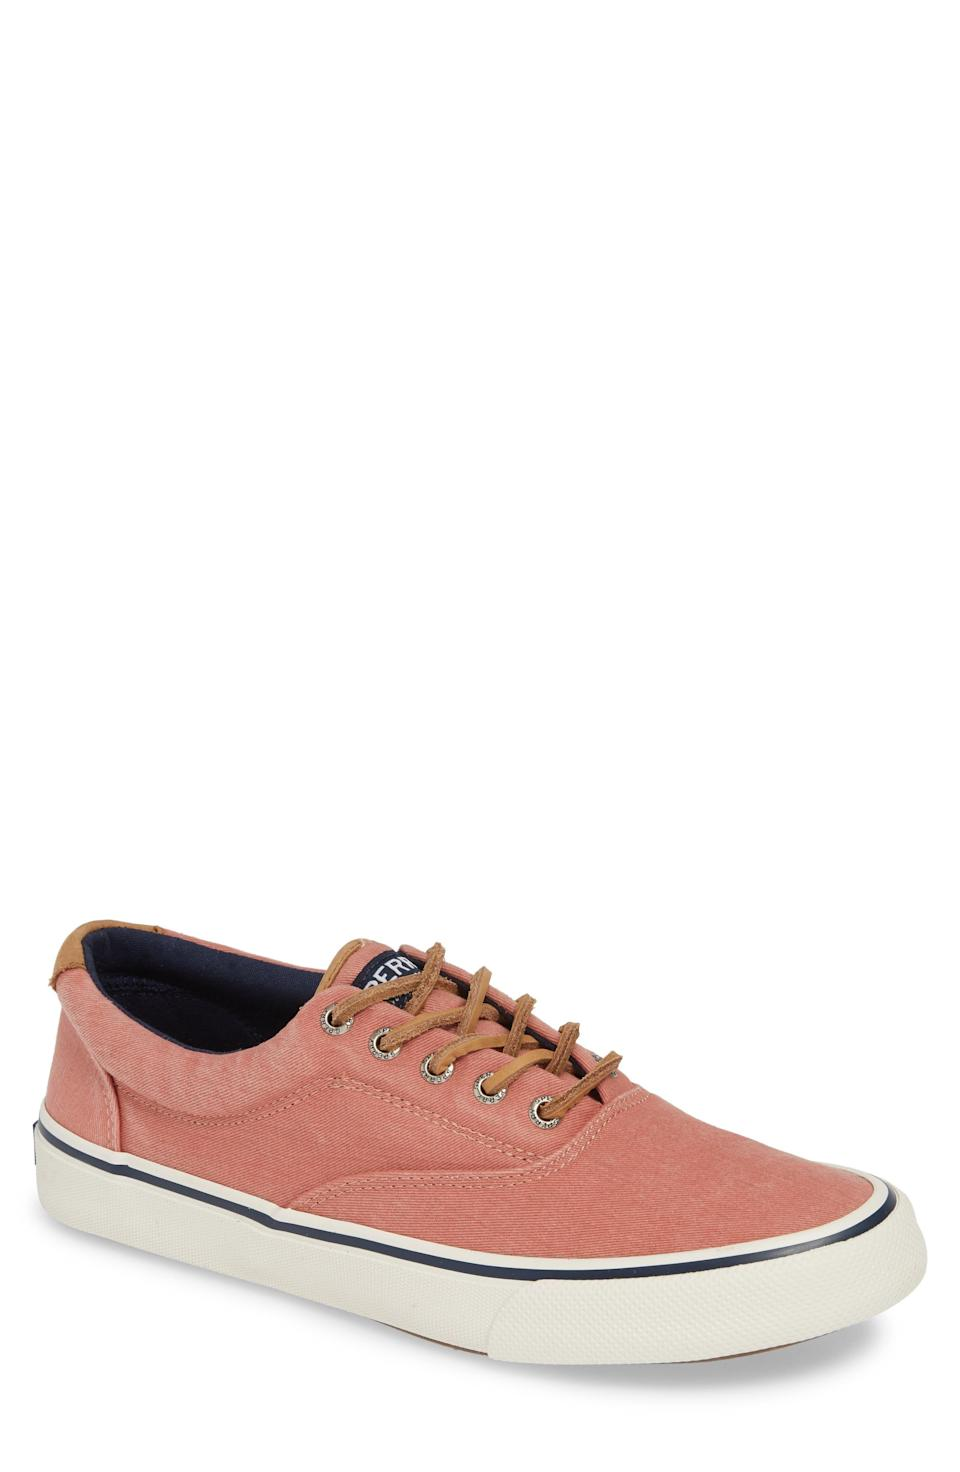 """<p><strong>SPERRY</strong></p><p>nordstrom.com</p><p><strong>$59.95</strong></p><p><a href=""""https://go.redirectingat.com?id=74968X1596630&url=https%3A%2F%2Fshop.nordstrom.com%2Fs%2Fsperry-striper-ii-cvo-oxford-sneaker-men%2F5093980&sref=https%3A%2F%2Fwww.bestproducts.com%2Ffitness%2Fg37158206%2Fnordstroms-anniversary-sale-best-sneakers%2F"""" rel=""""nofollow noopener"""" target=""""_blank"""" data-ylk=""""slk:BUY IT HERE"""" class=""""link rapid-noclick-resp"""">BUY IT HERE</a></p><p><del>$60</del><strong><br>$39.90</strong> </p><p>A pop of color never hurt anyone, right? Right. These easy lace-up sneakers are the perfect piece to round out the rest of your wardrobe for the remainder of the summer season.</p>"""